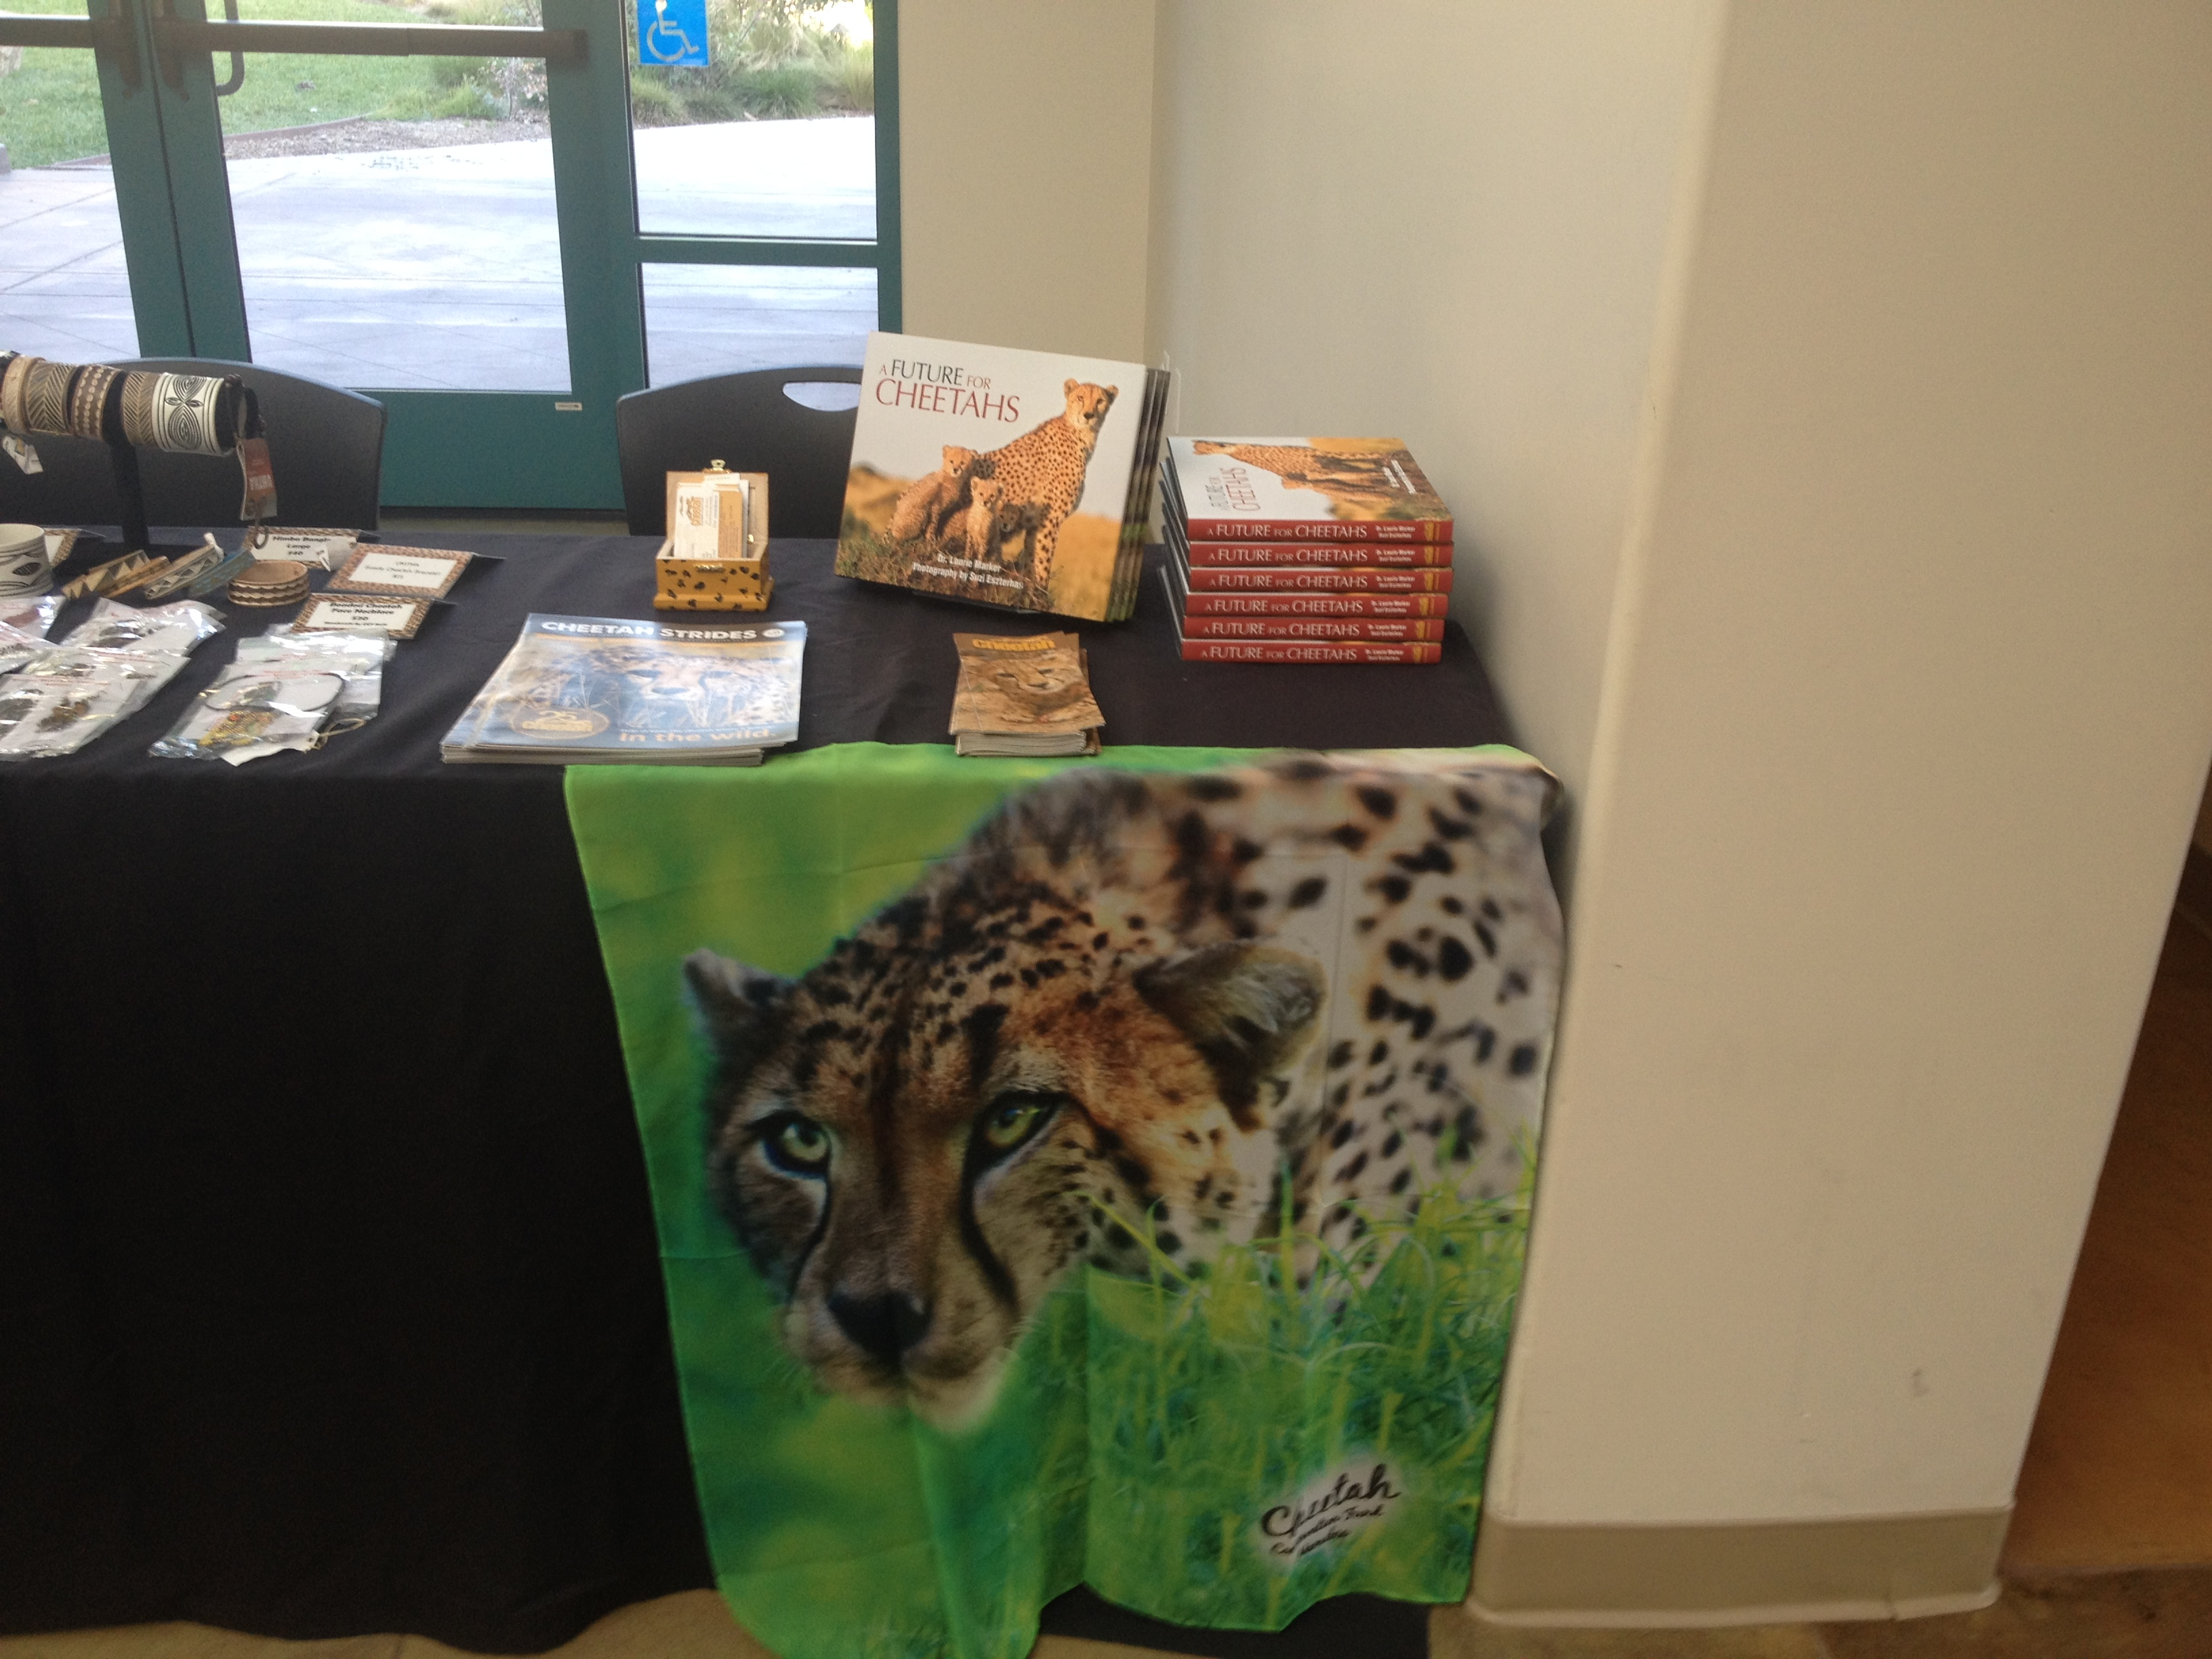 Dr. Laurie Marker's book A Future for Cheetahs .